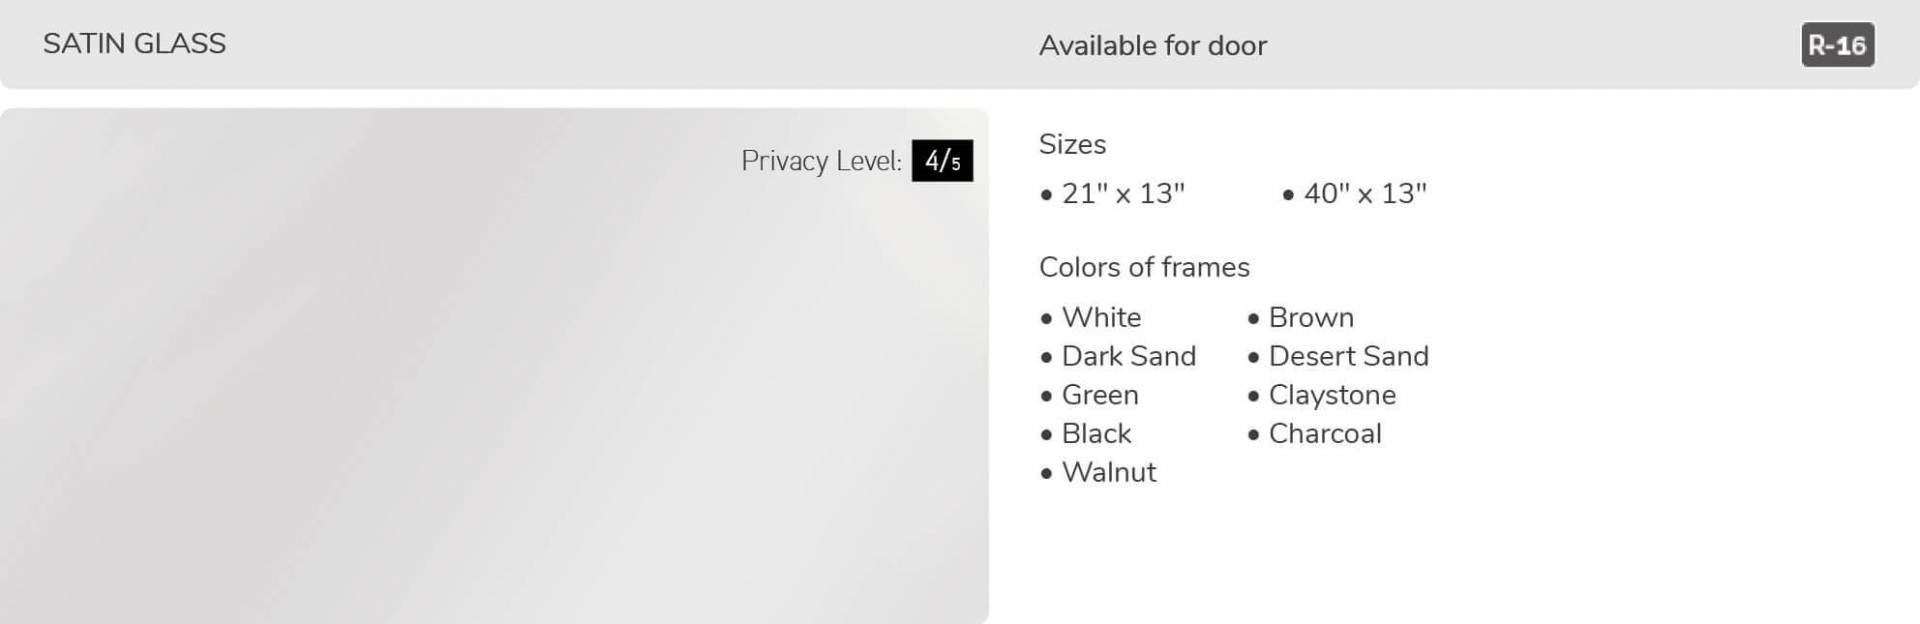 Satin glass, 21' x 13 and 40' x 13', available for door R-16